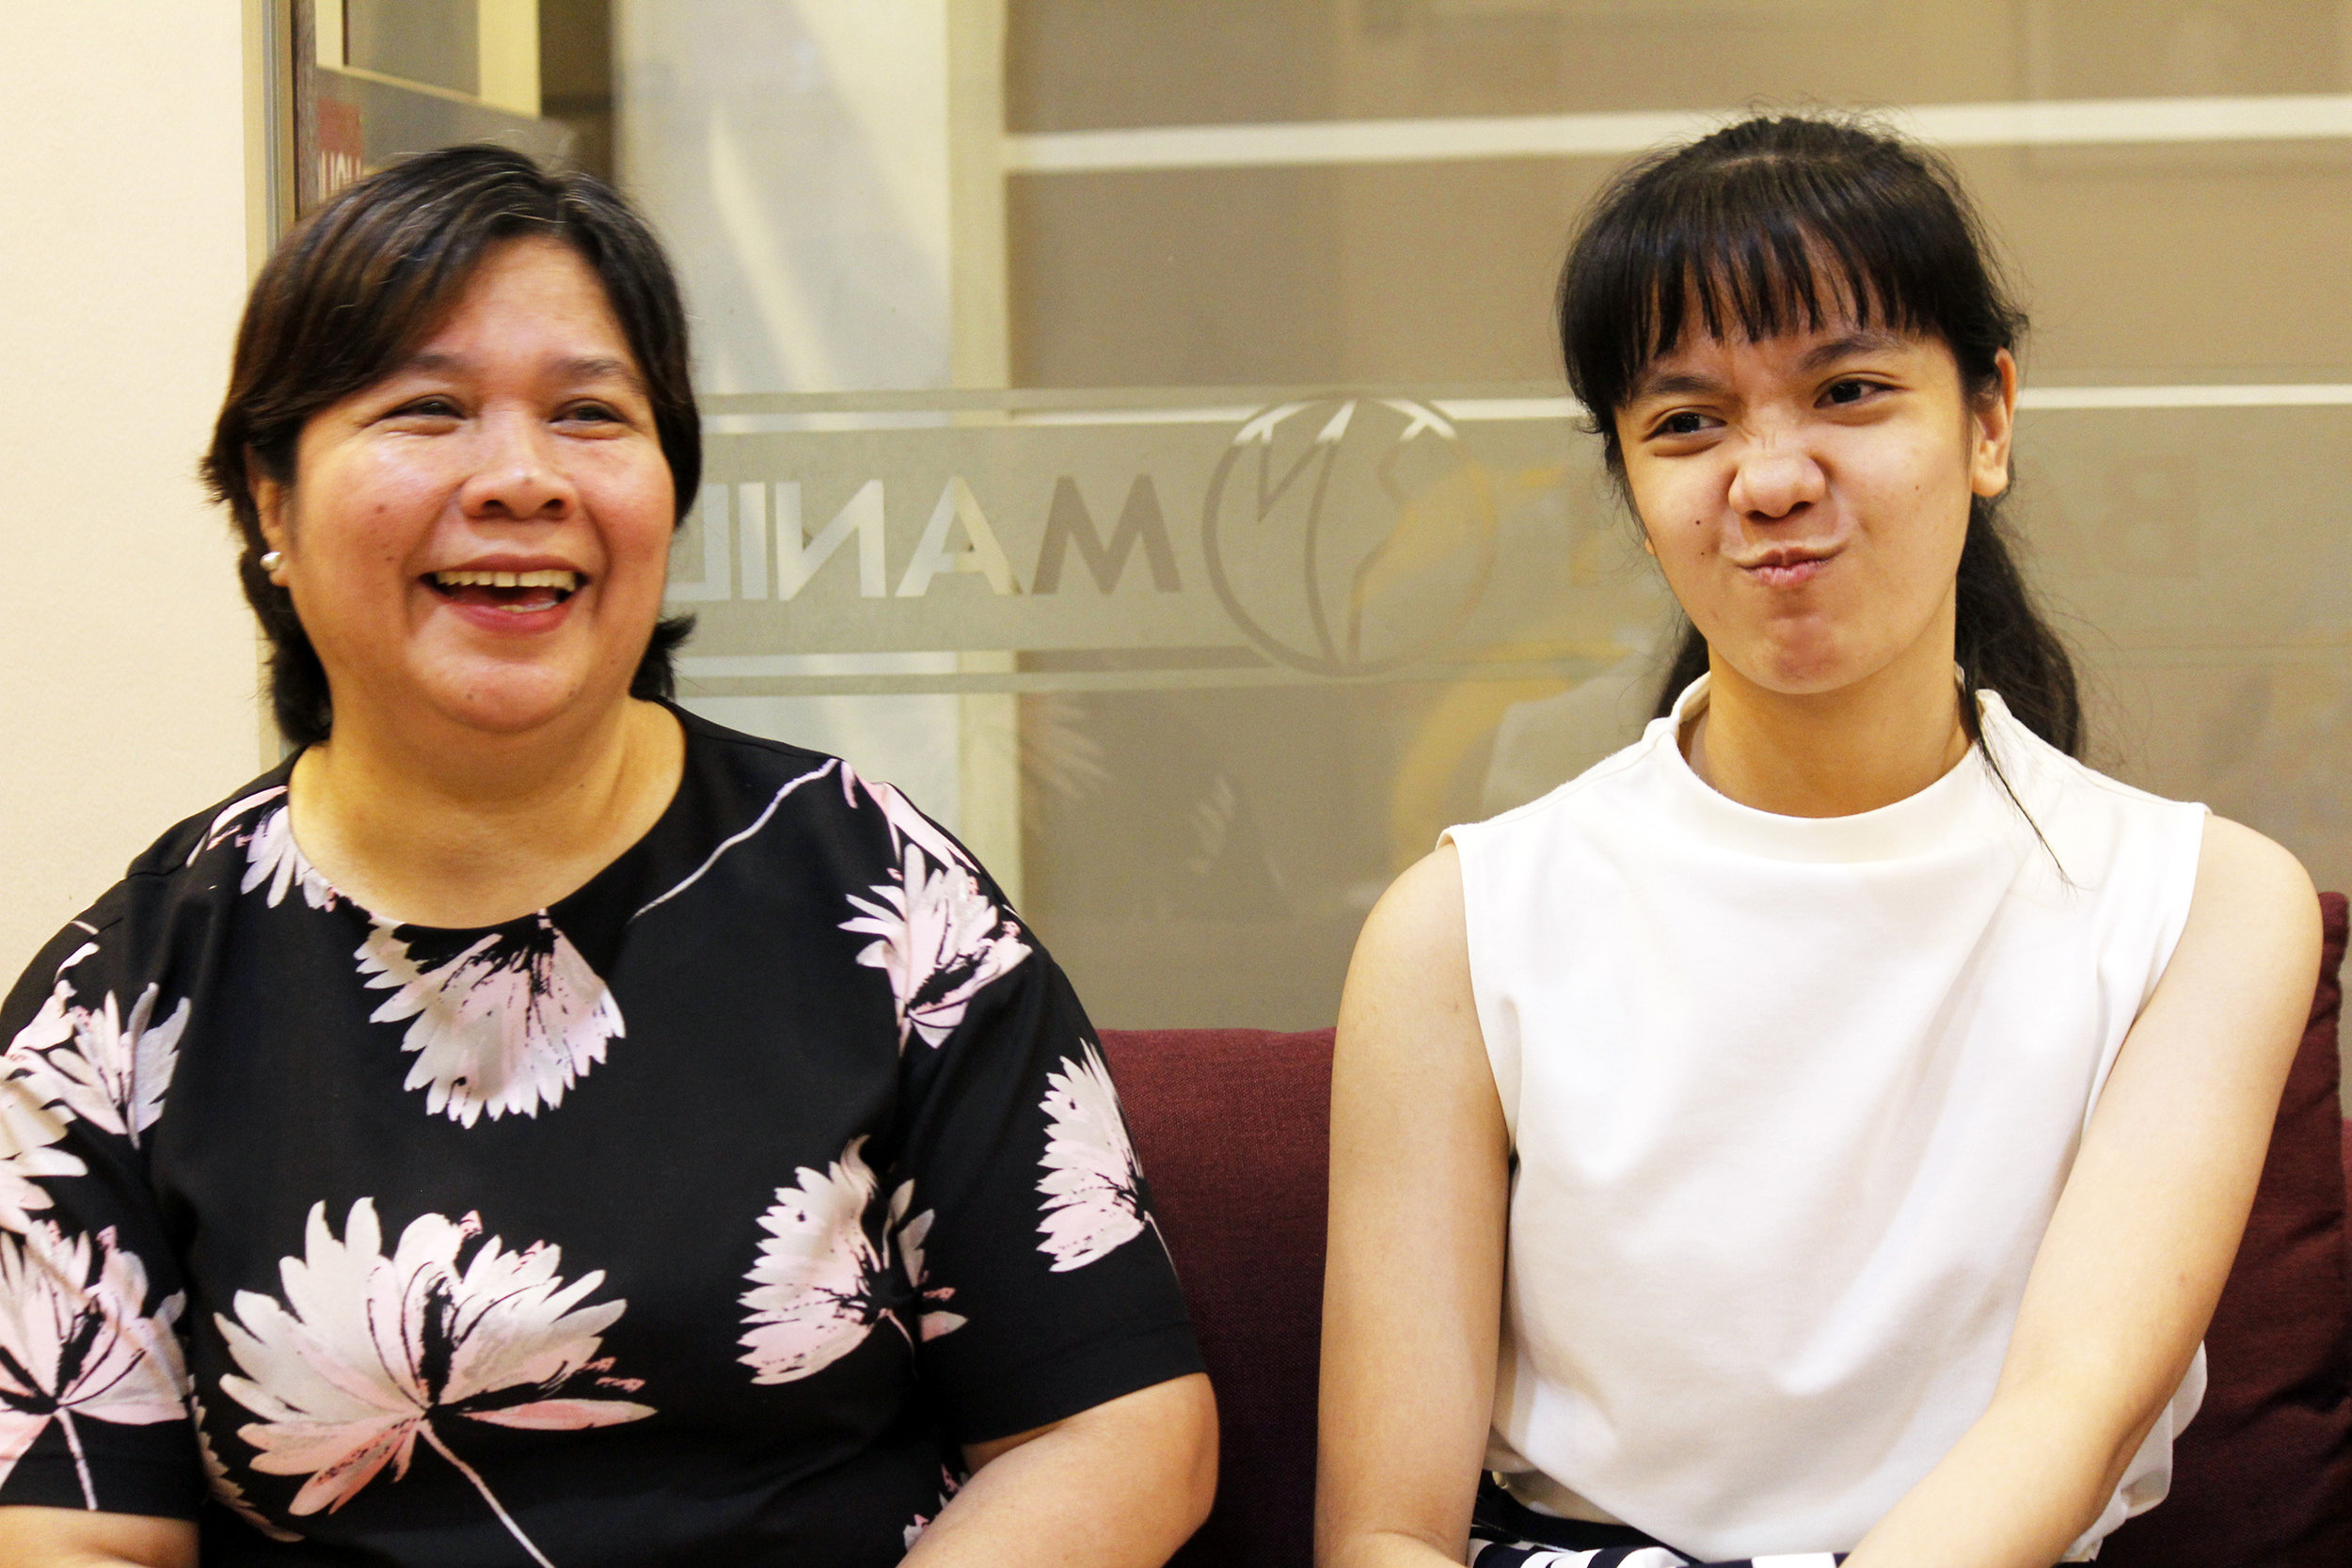 Marinette jokingly makes a face as mom Baby talks about their occasional disagreements. Photo by Jimmy Villanueva